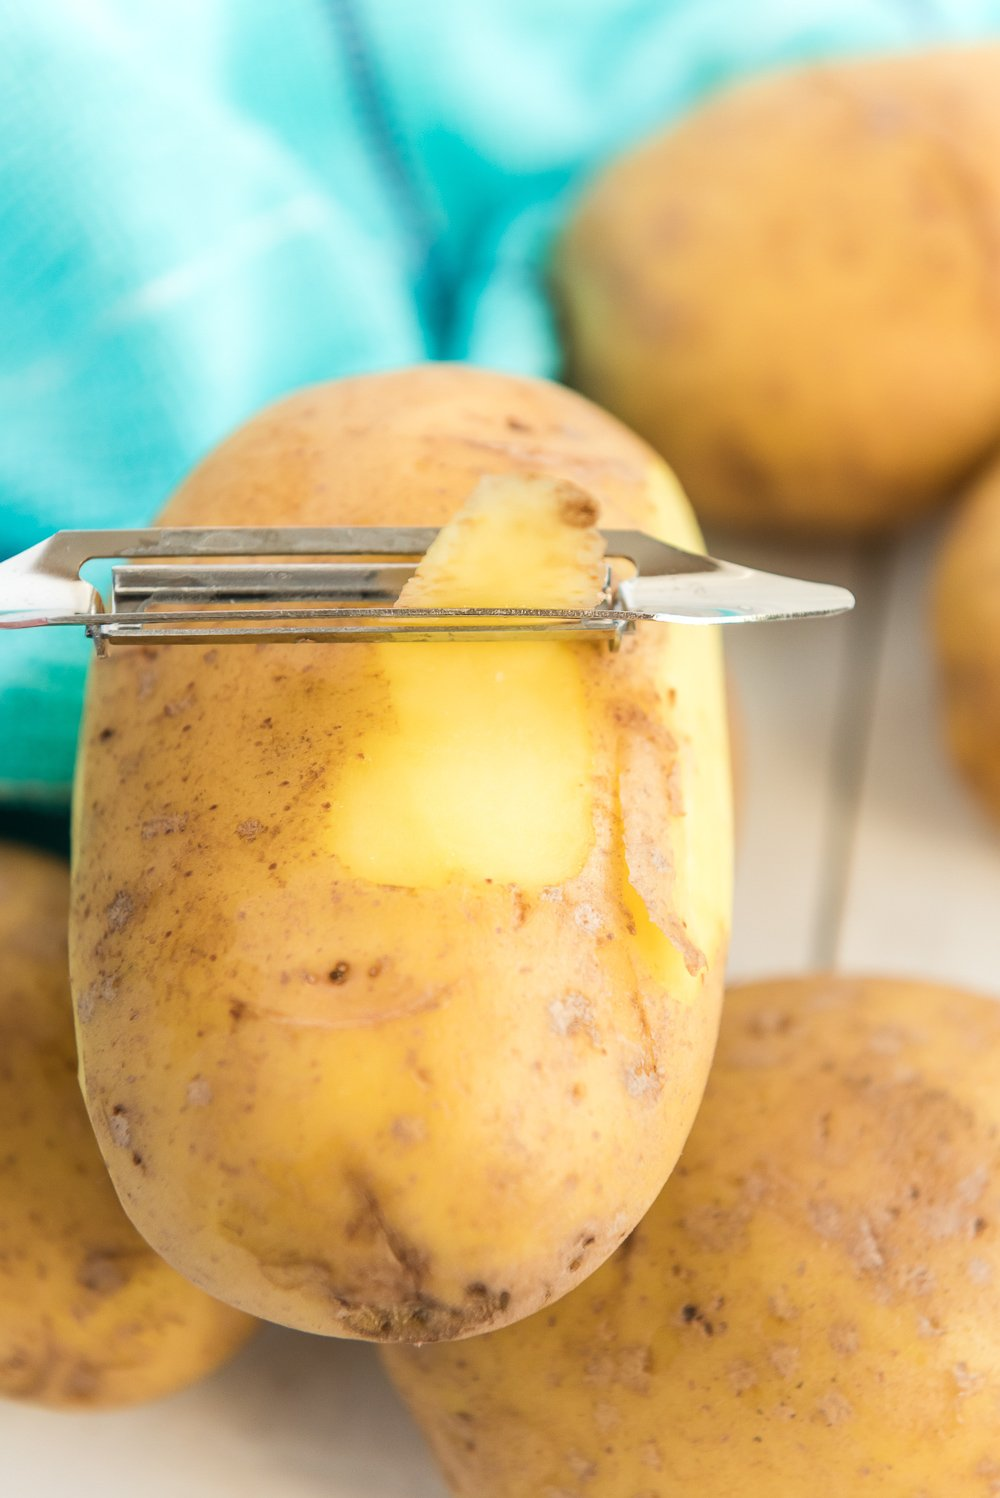 Peeling potatoes for Mashed Potatoes.